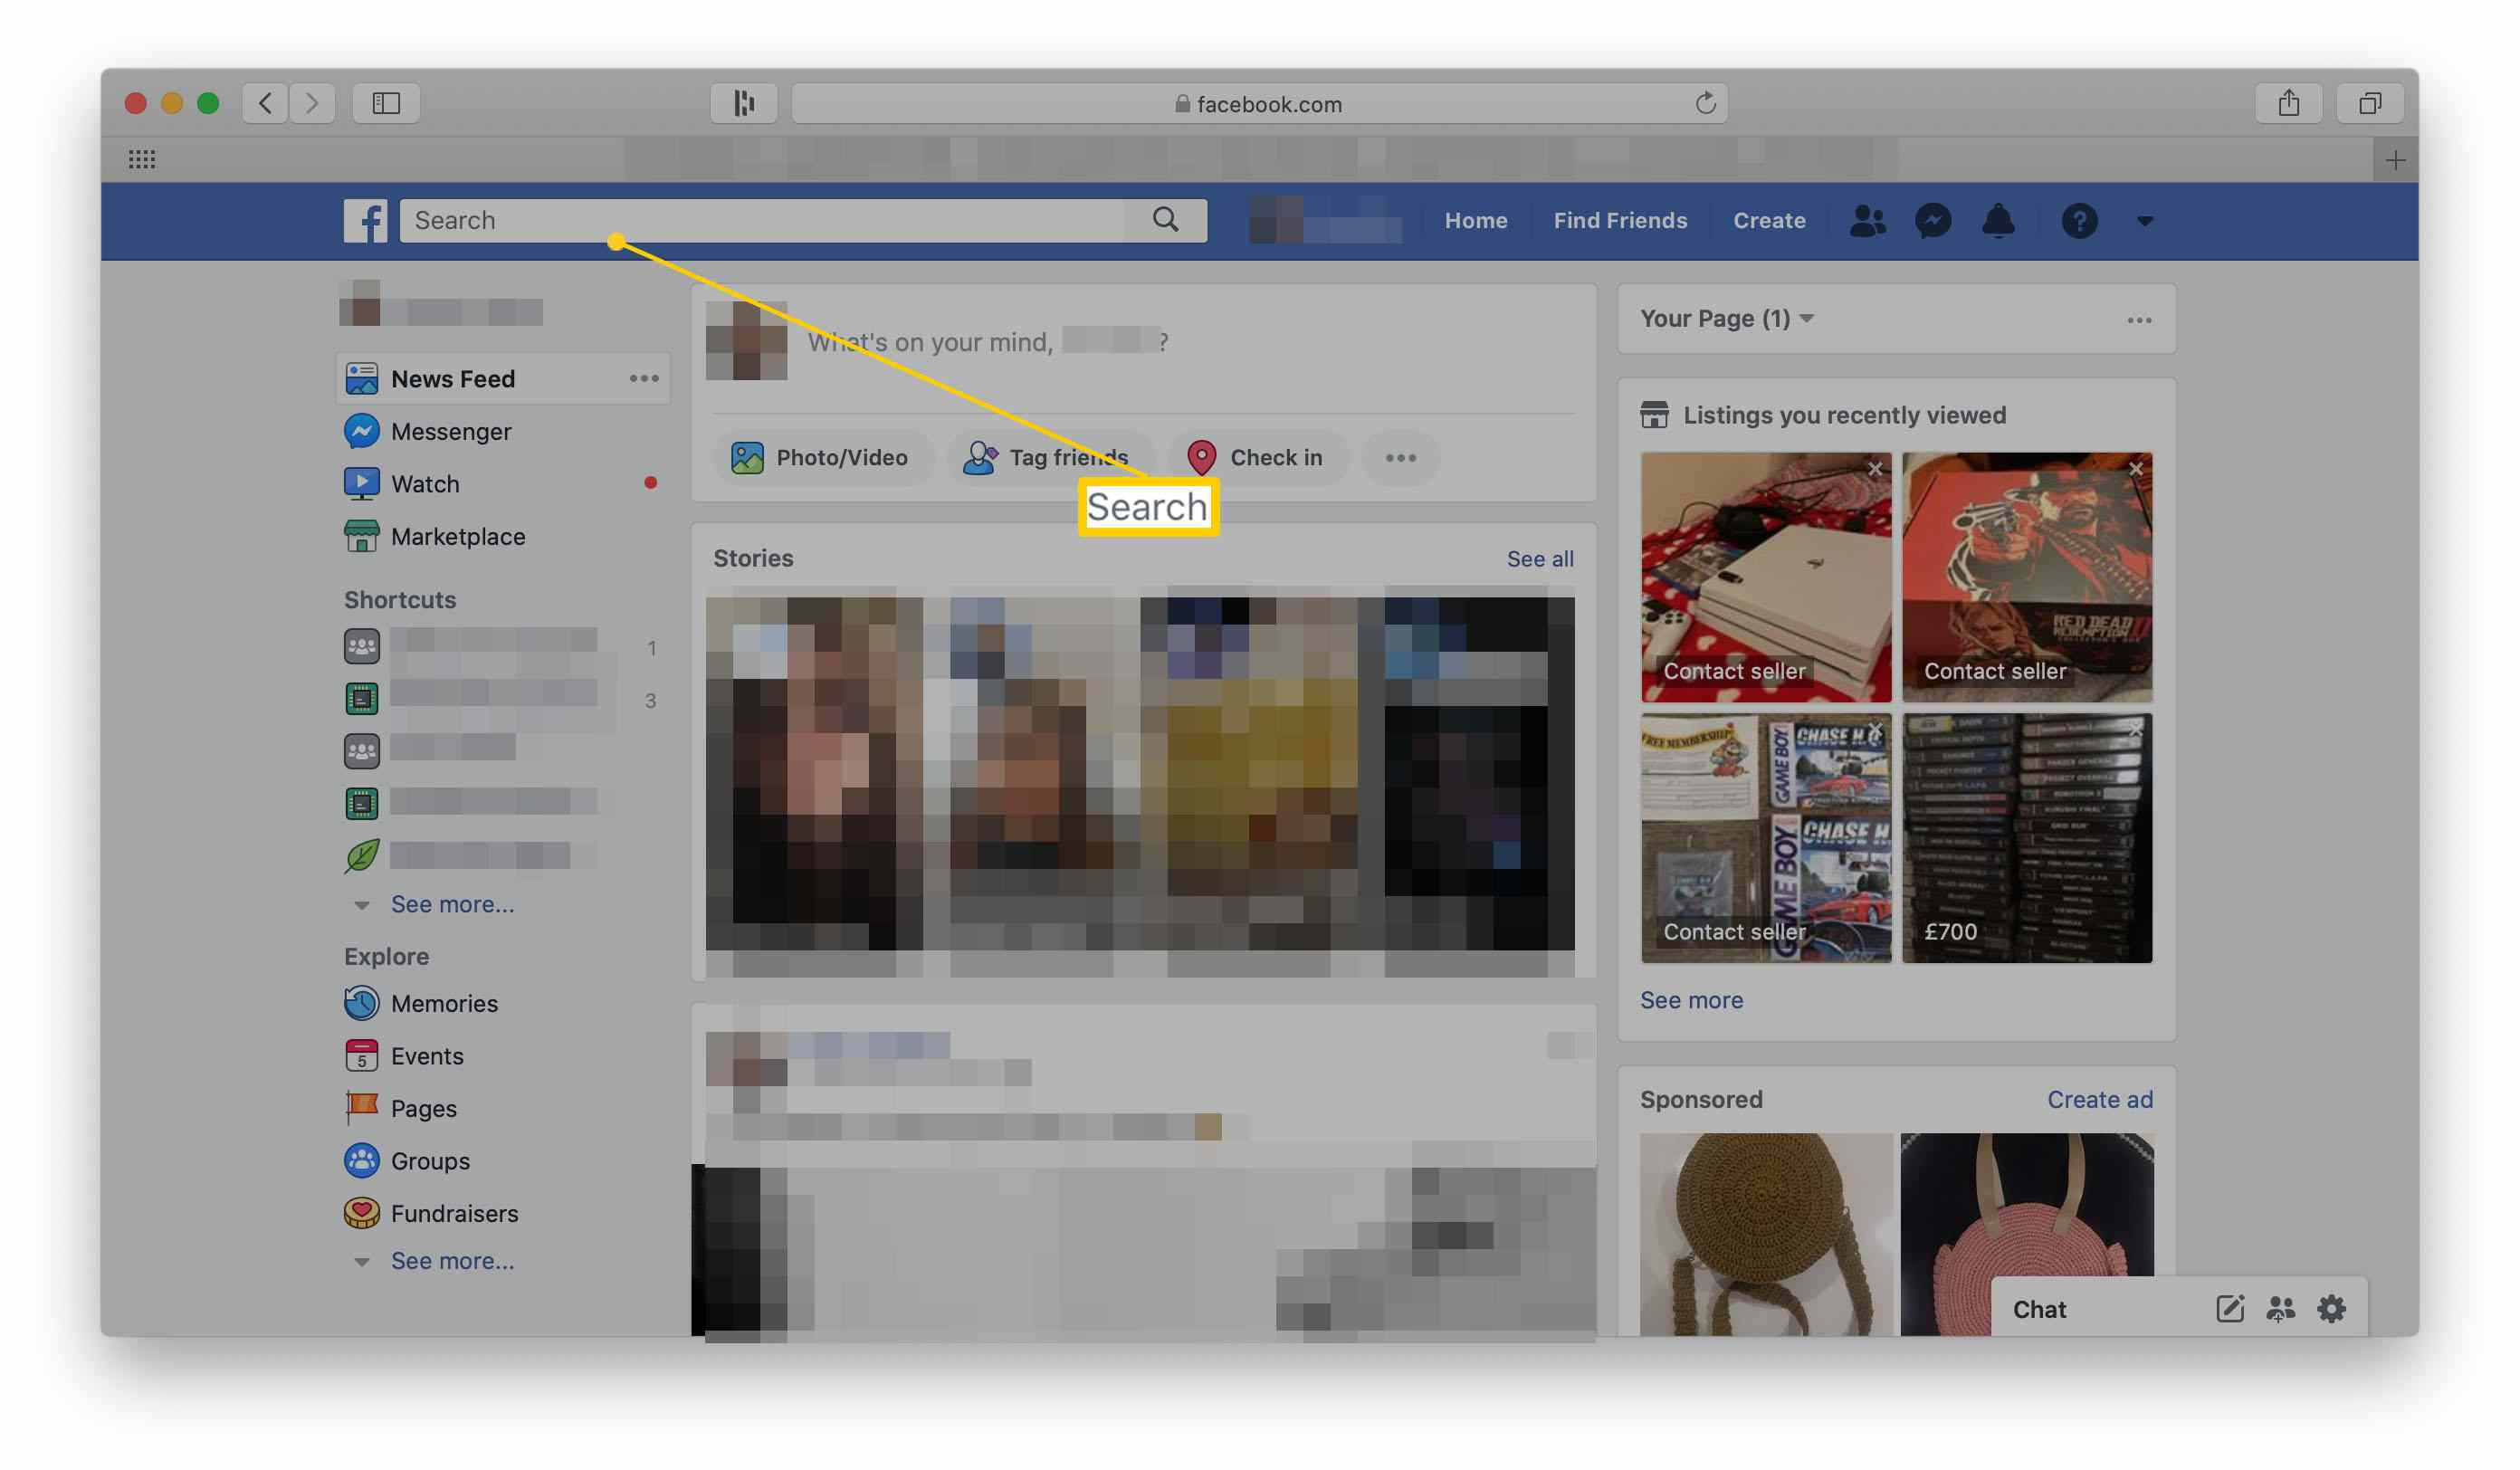 Facebook homepage with the search bar highlighted